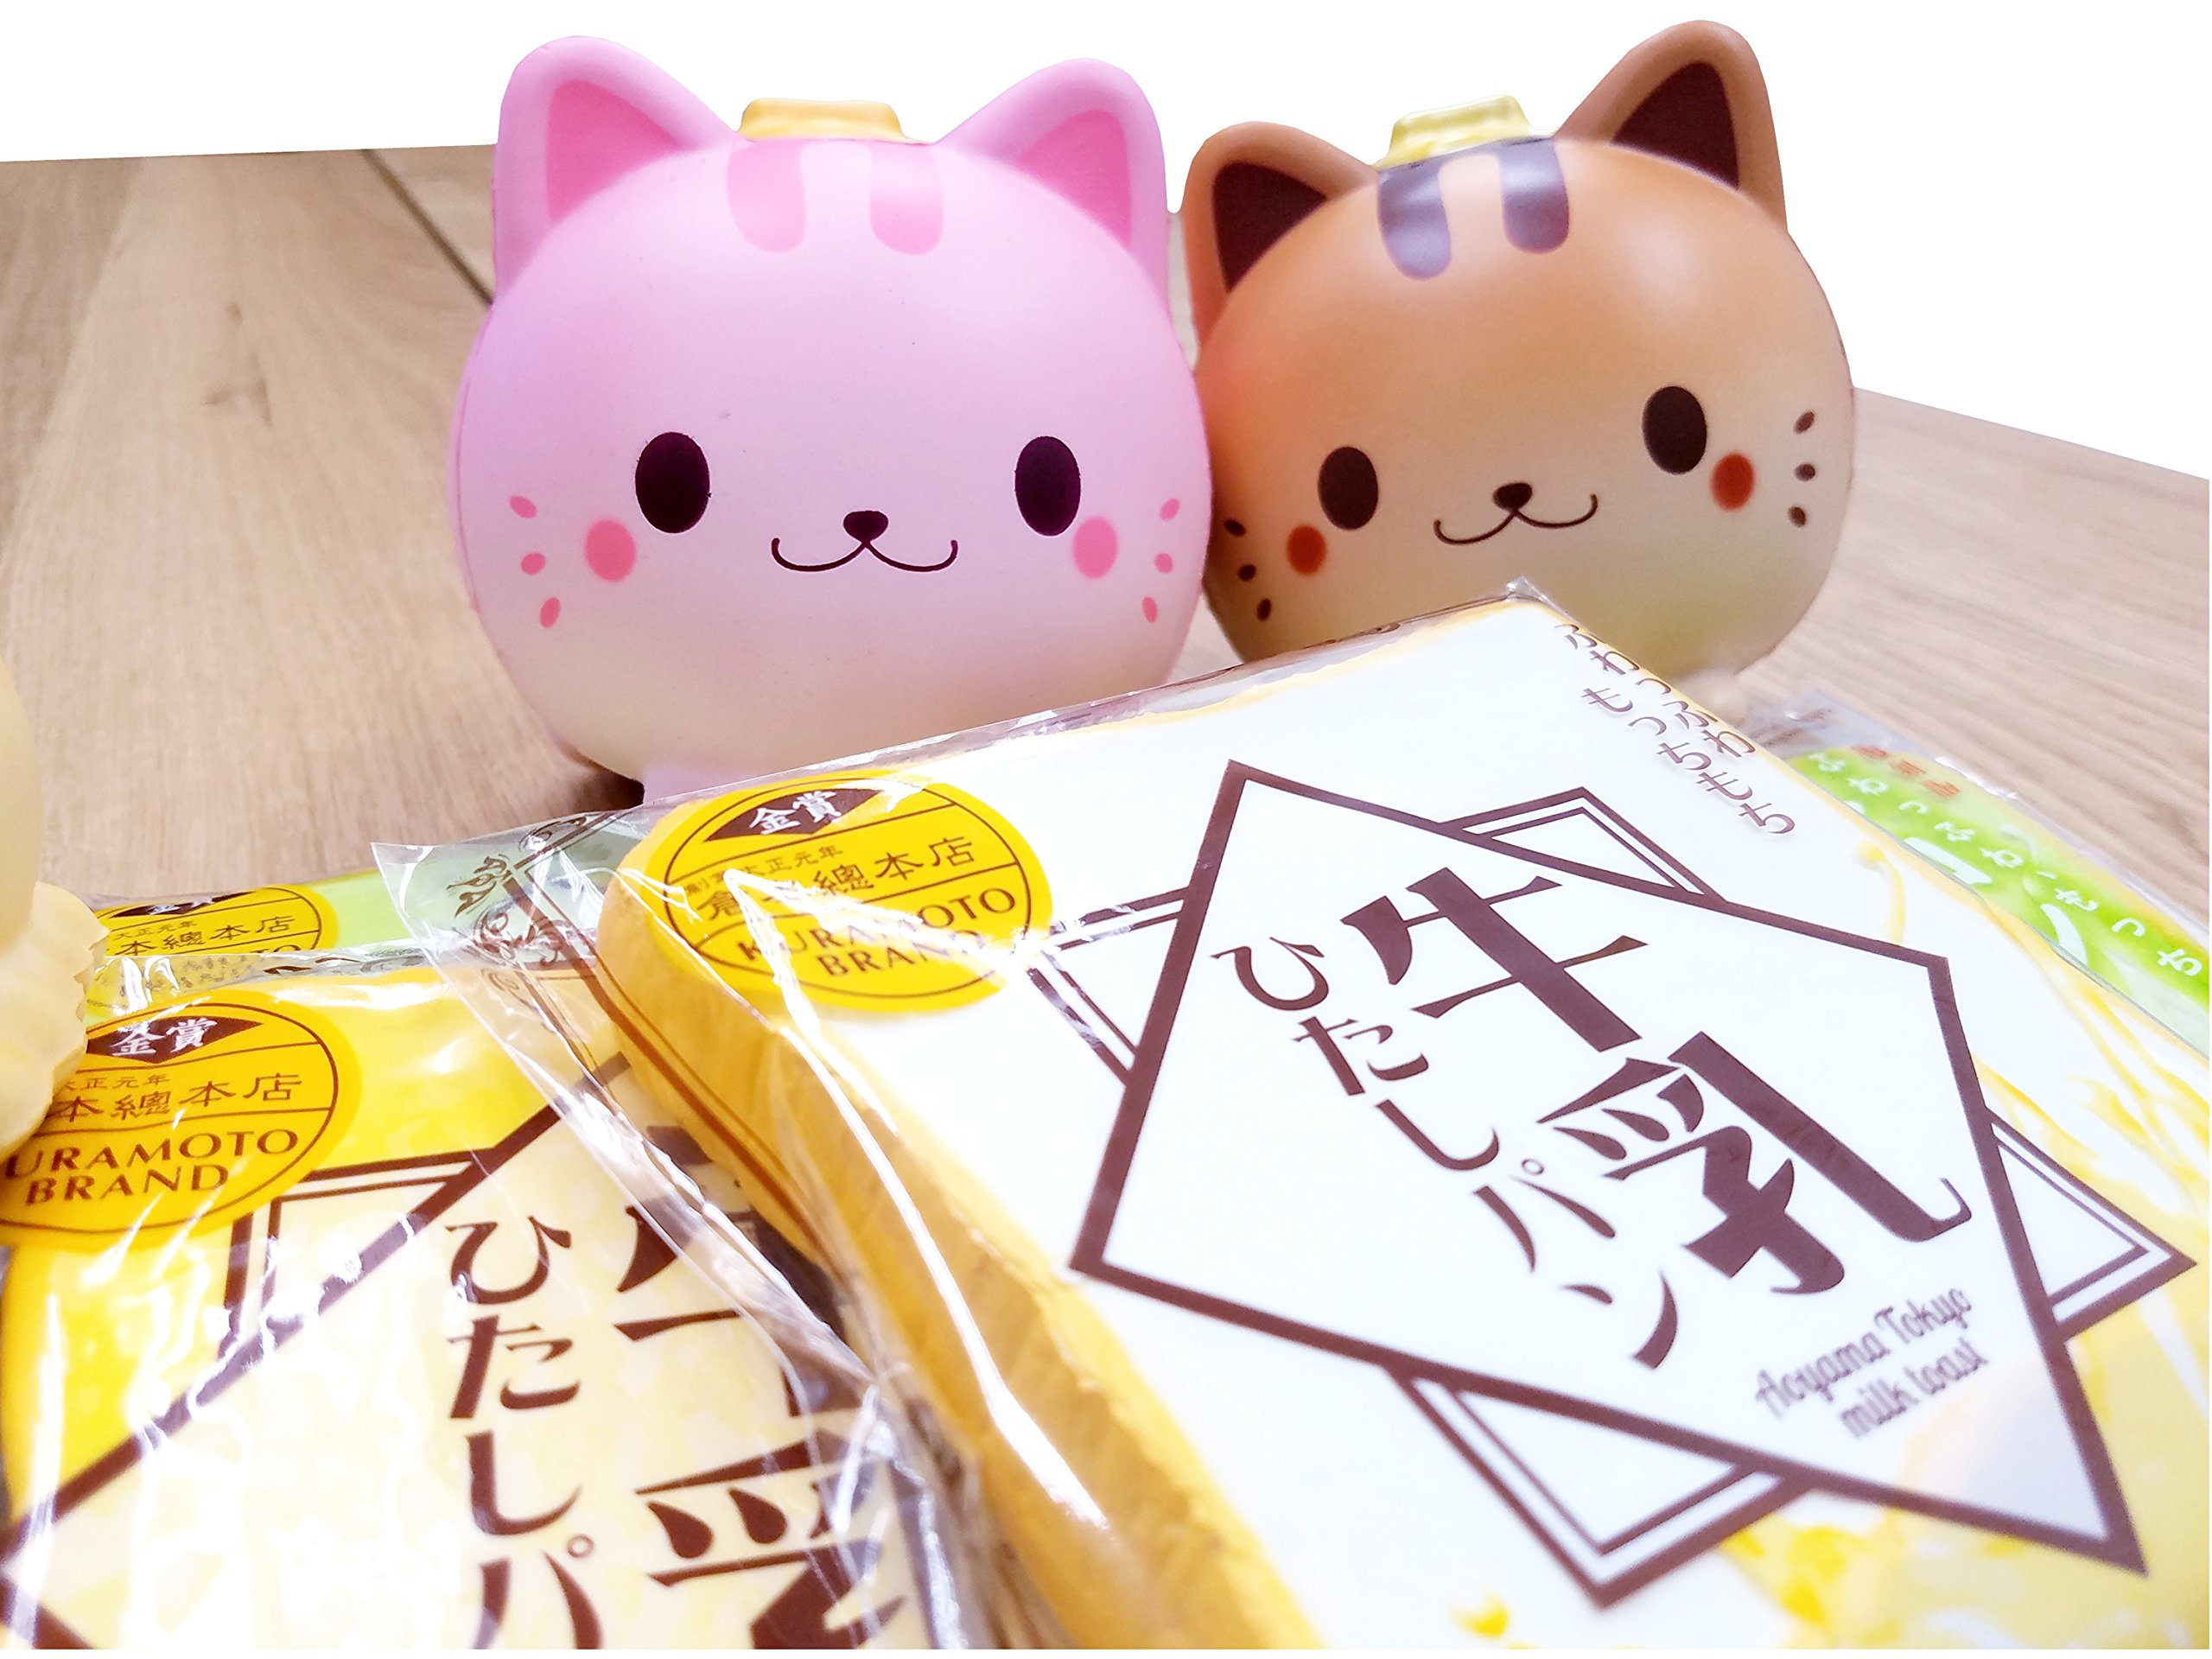 ibloom ''Slow Rising [Squishy Collection] Nyan Pancake Chocolate [Scented] Cake Jumbo Squishy Kids Cute Adorable Doll Stress Relief Toy Decorative Props by ibloom